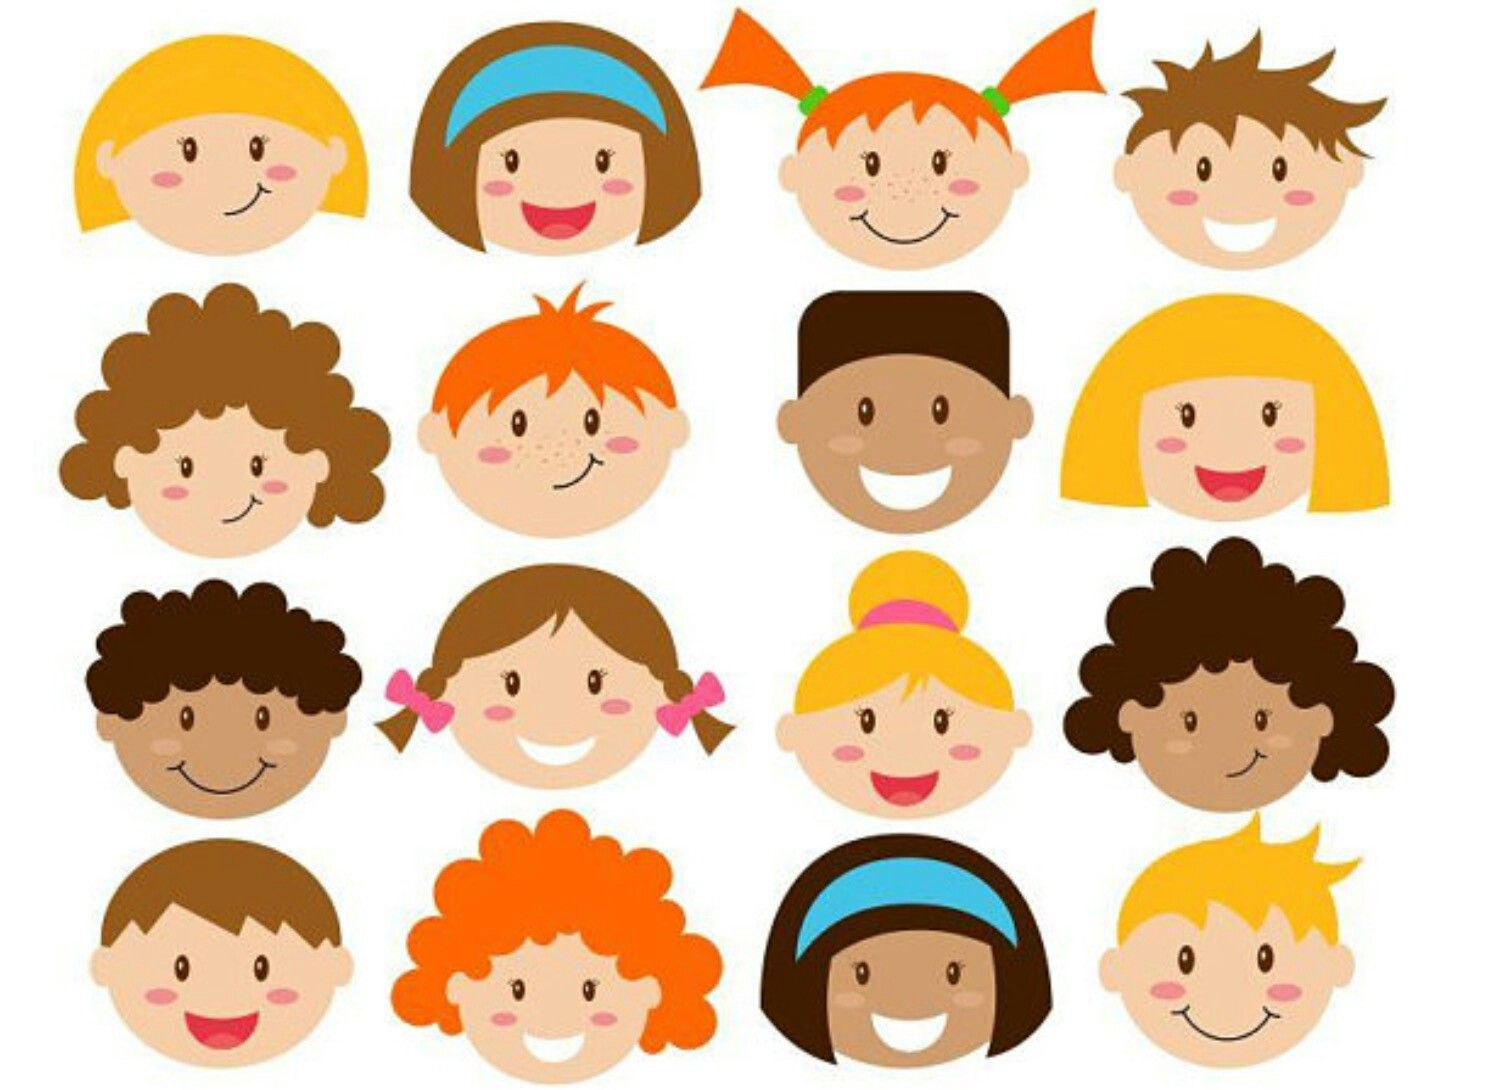 Pin by renata pacha. Faces clipart kid faces